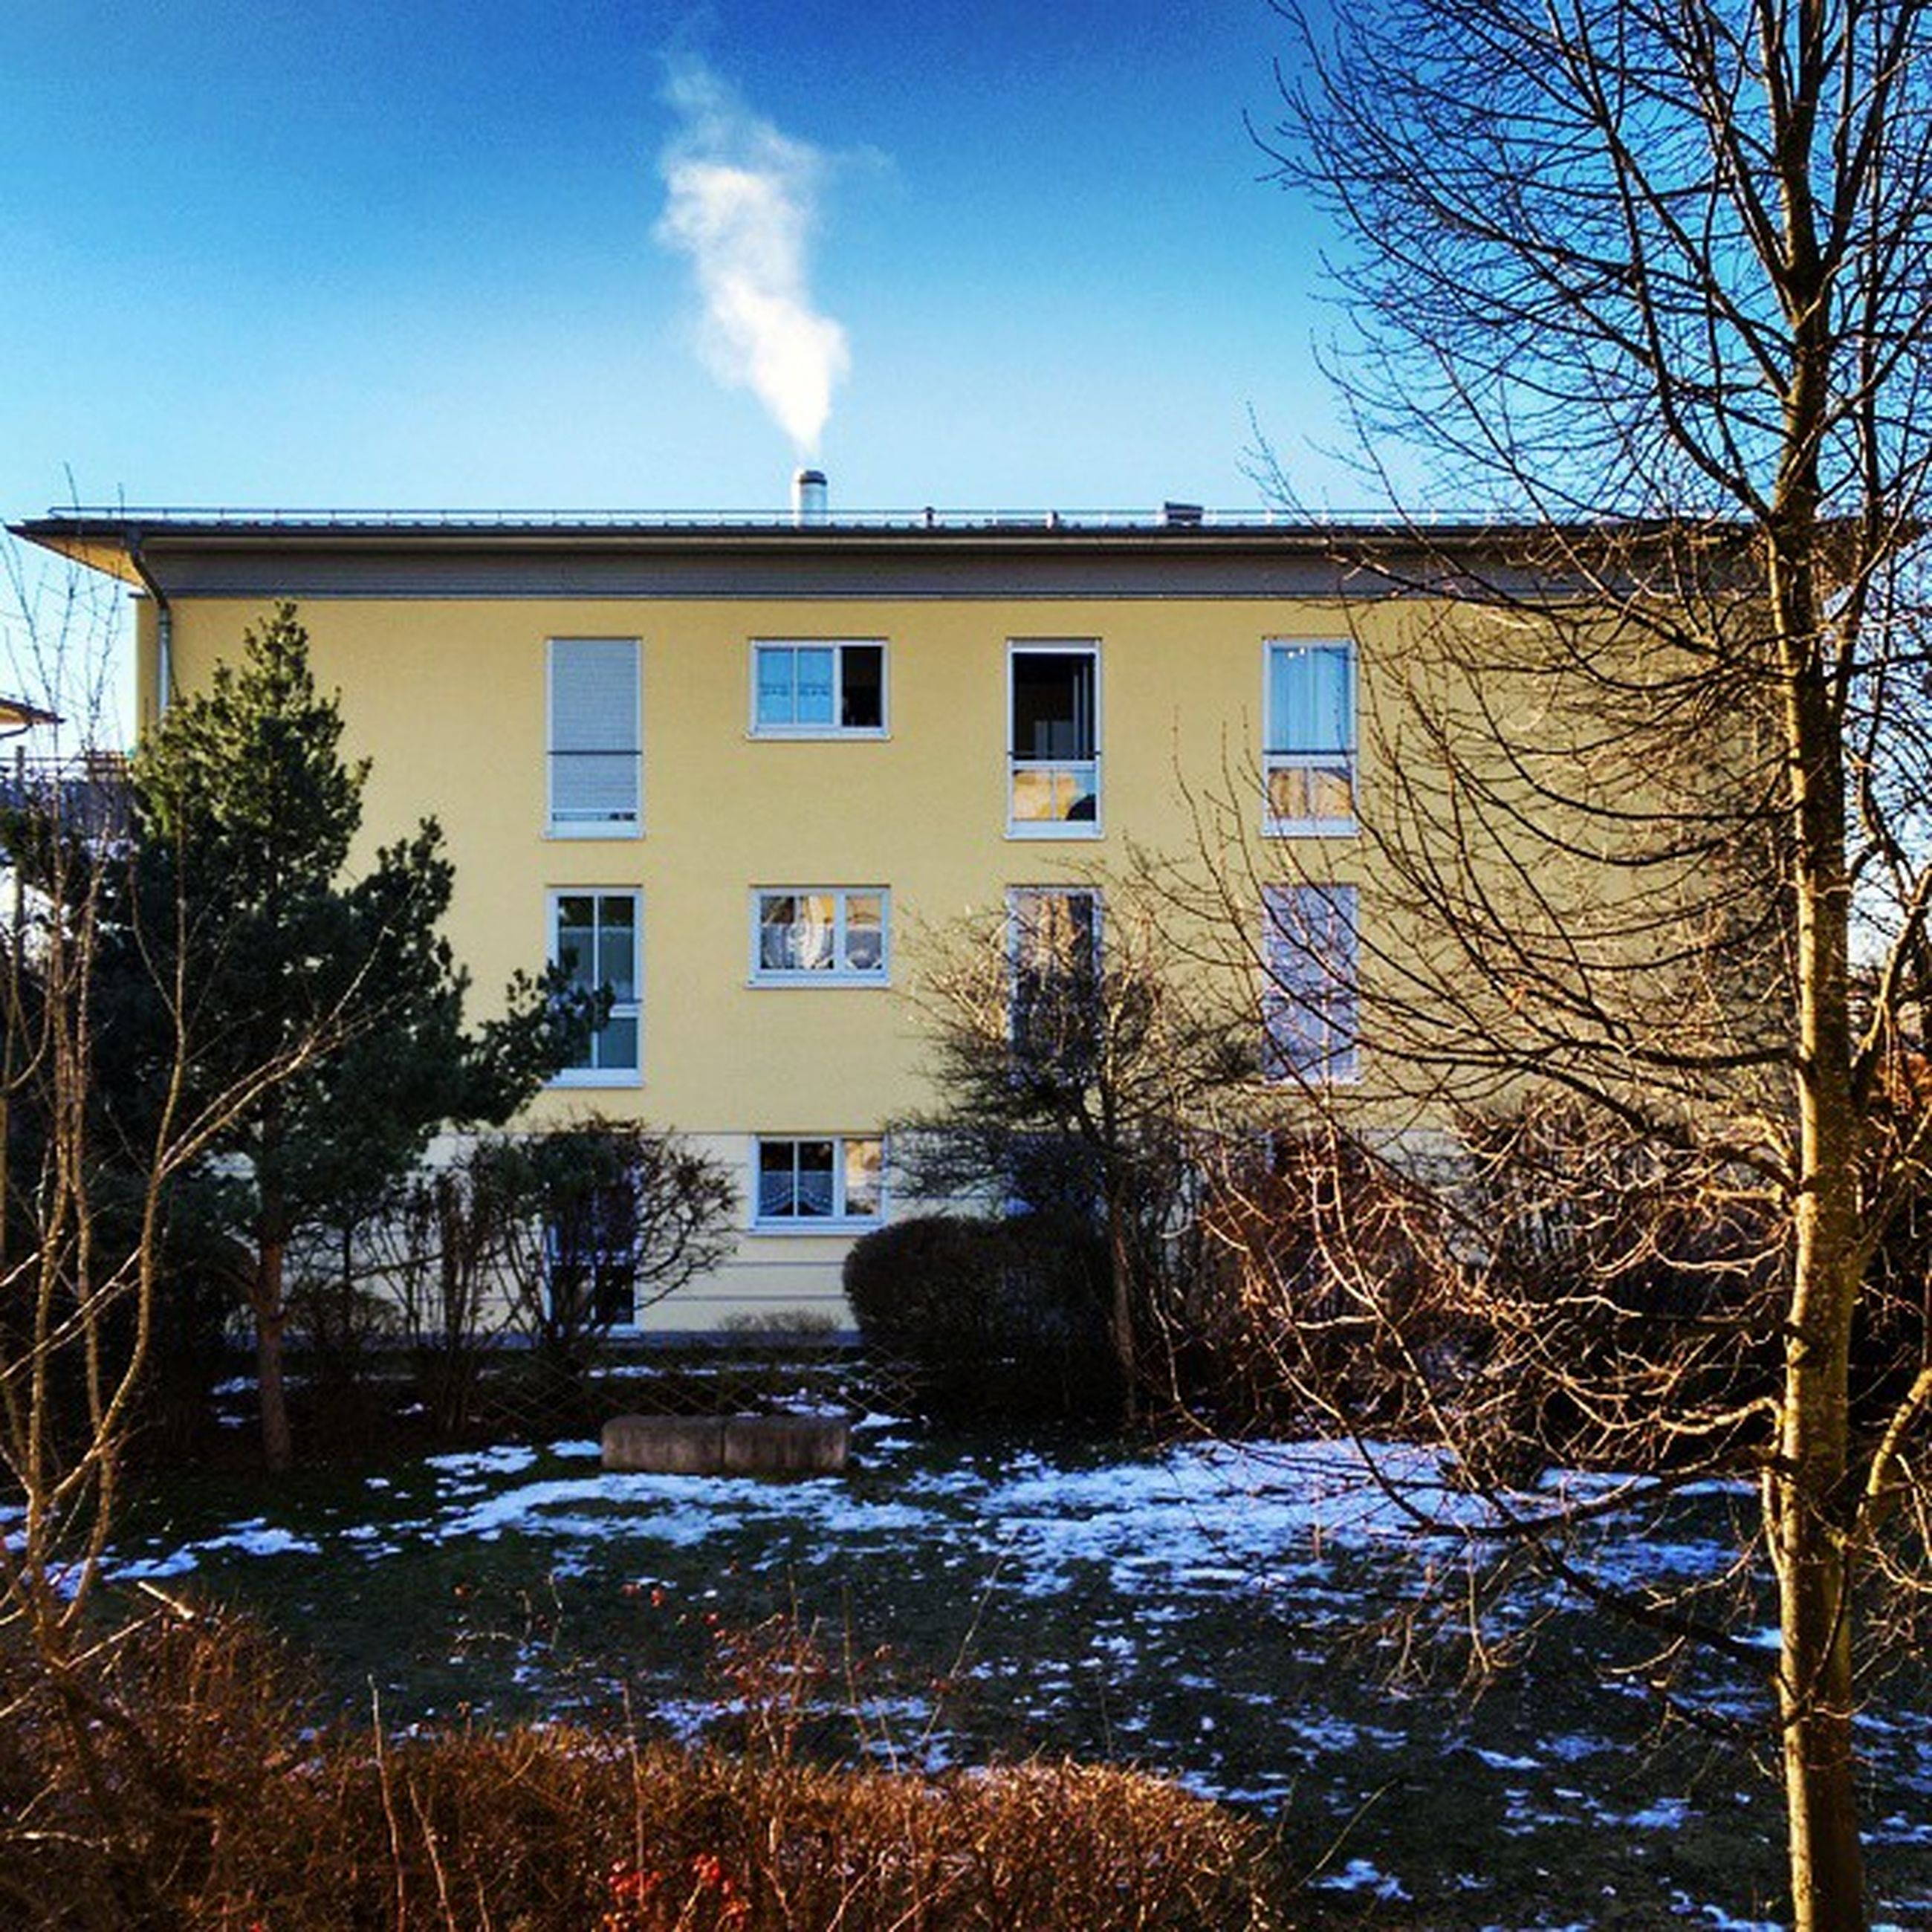 building exterior, architecture, built structure, snow, tree, bare tree, house, winter, cold temperature, residential structure, residential building, sky, window, season, blue, covering, day, no people, branch, nature